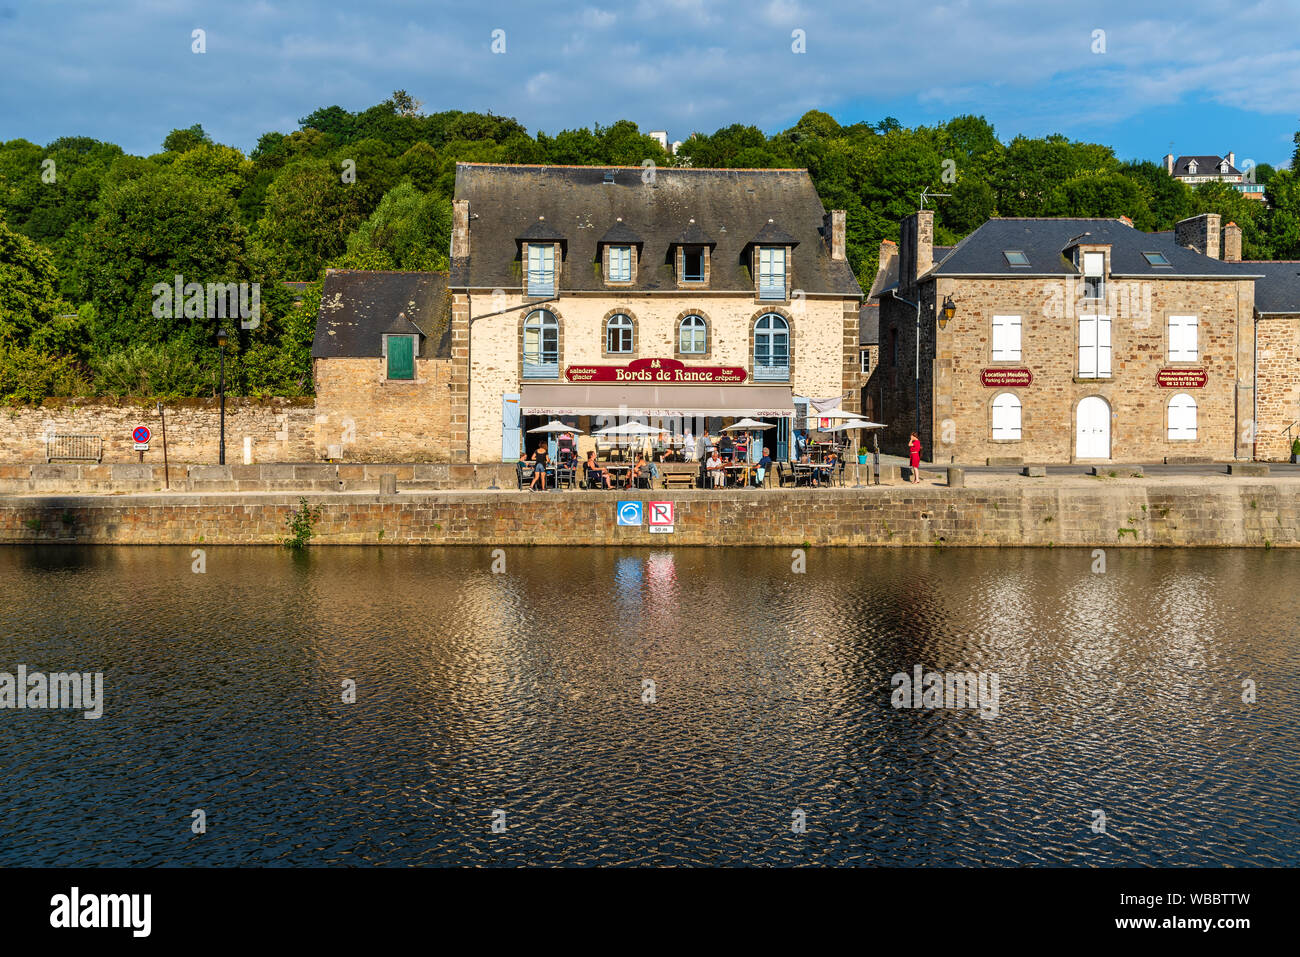 Dinan, France - July 23, 2018: View of a typical restaurant in the port of the town on the river Rance at sunset, French Brittany Stock Photo